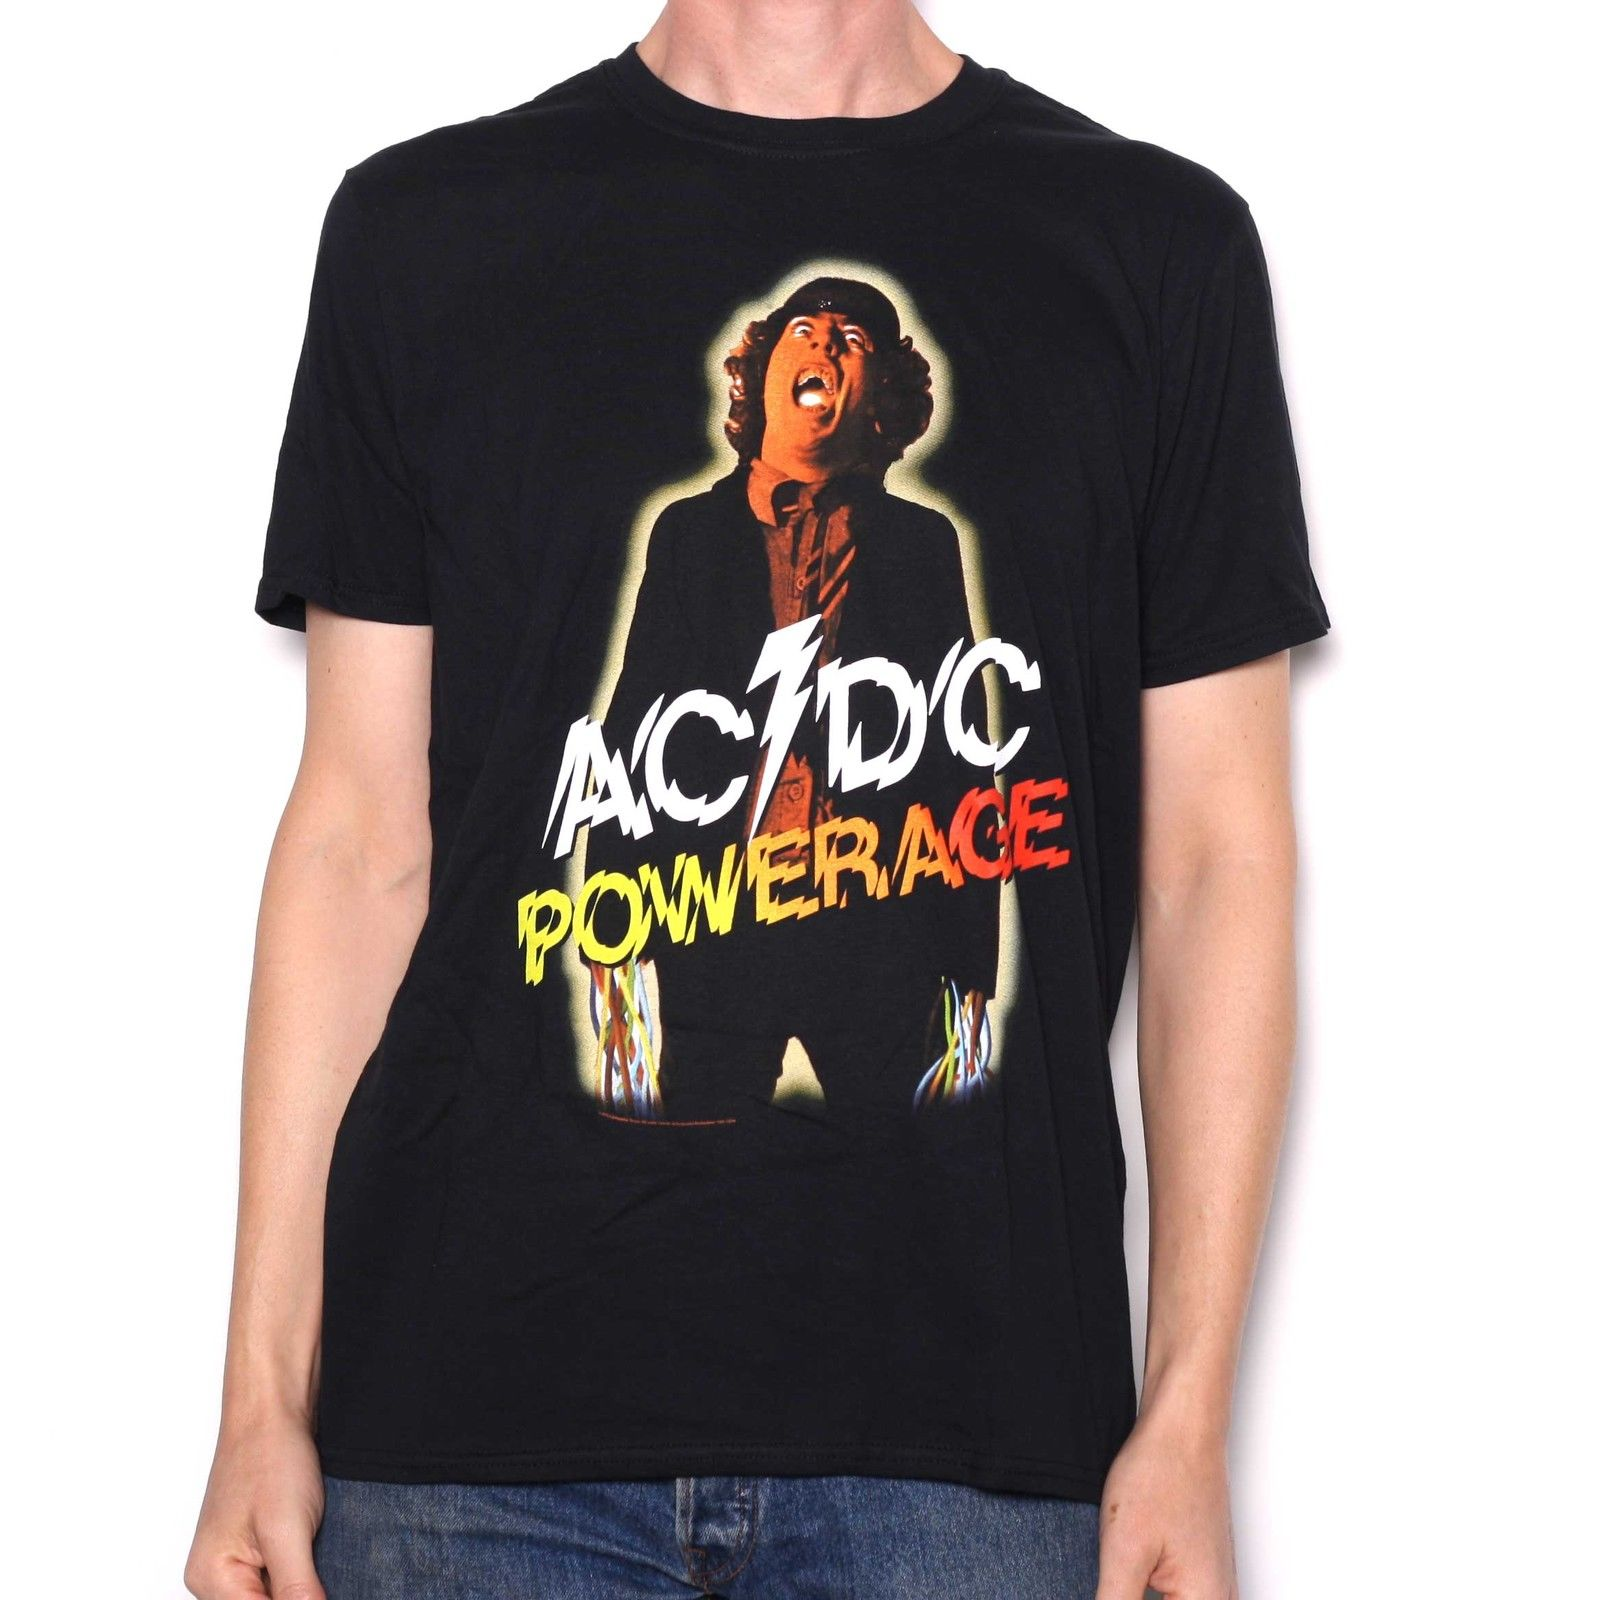 AC/DC T Shirt - Powerage Black 100% Official Fully Licensed AC/DC Merchandise New Man Design T-Shirt Print Black Style Top Tee